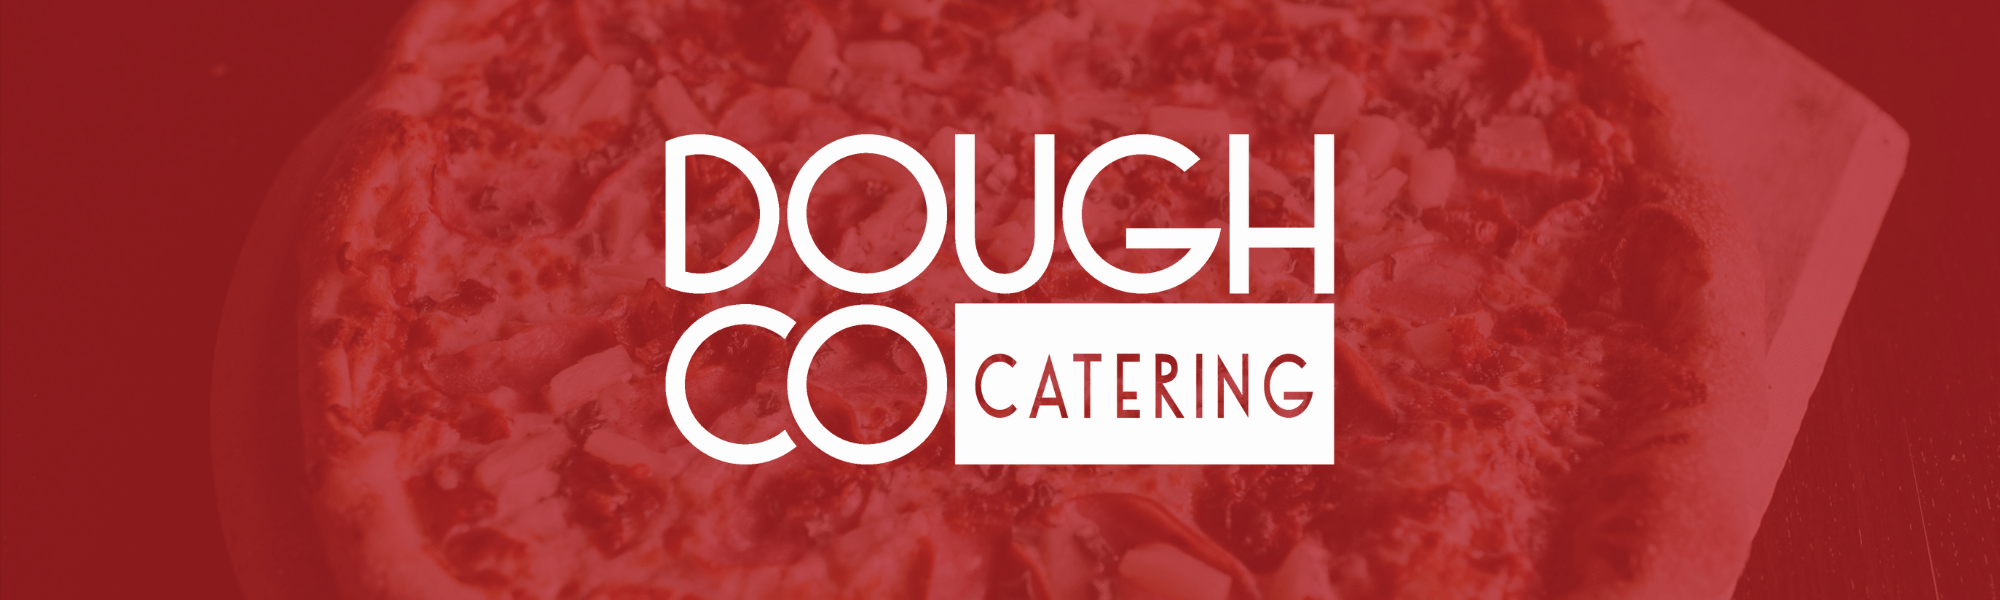 Dough Co. Pizza Catering